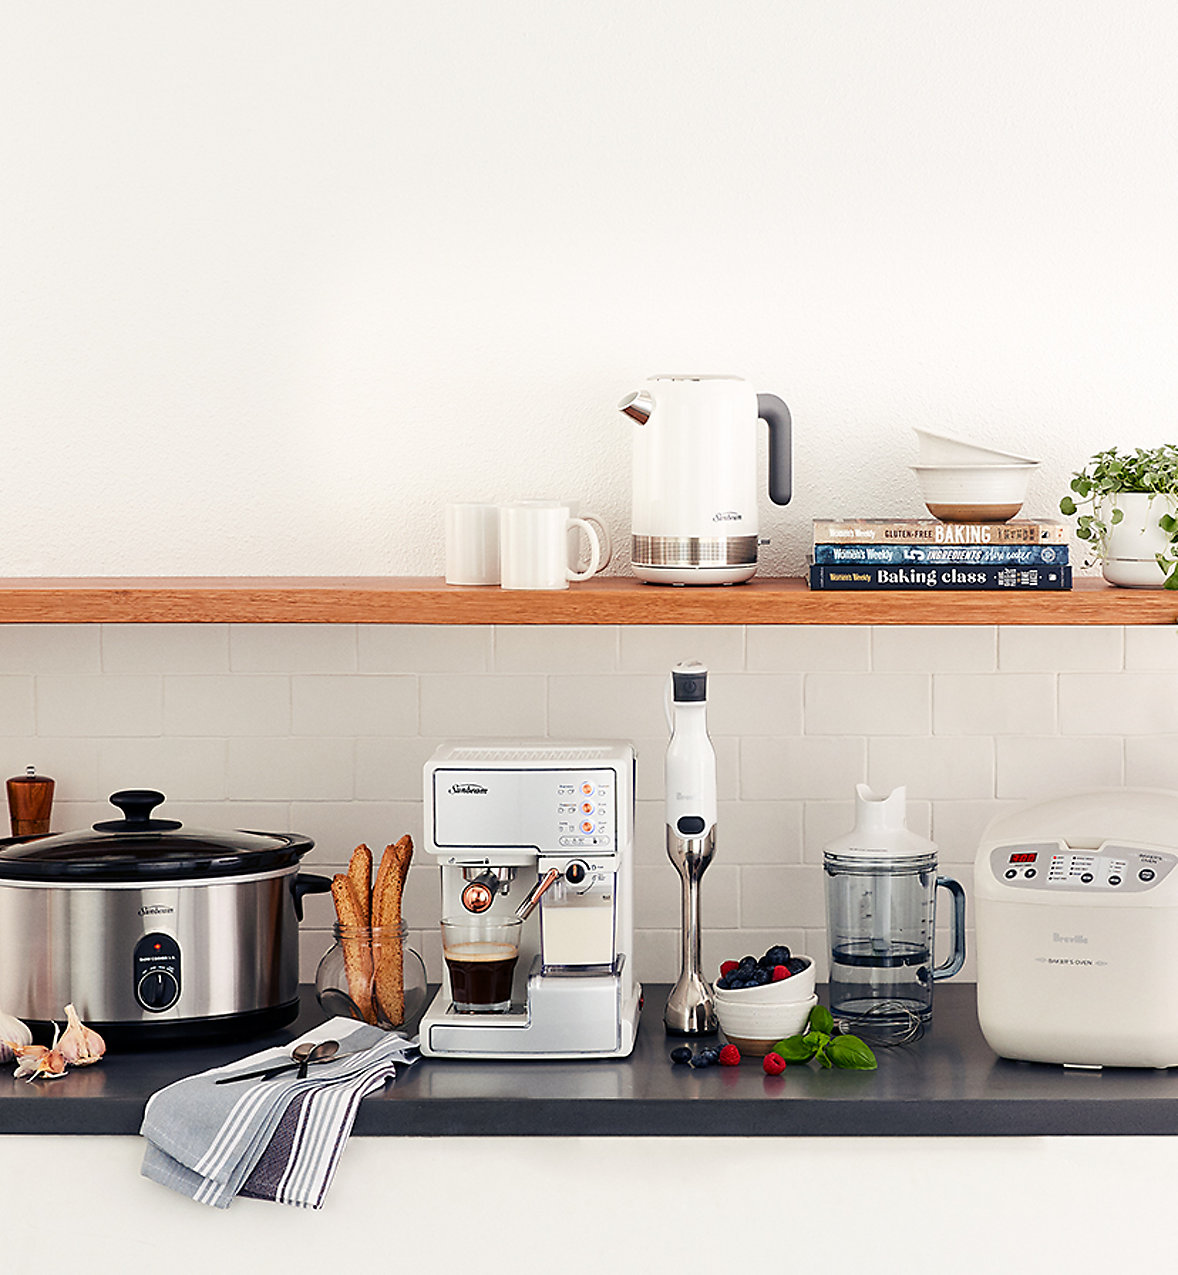 Kitchen Champions. Win every mealtime with these appliance deals.